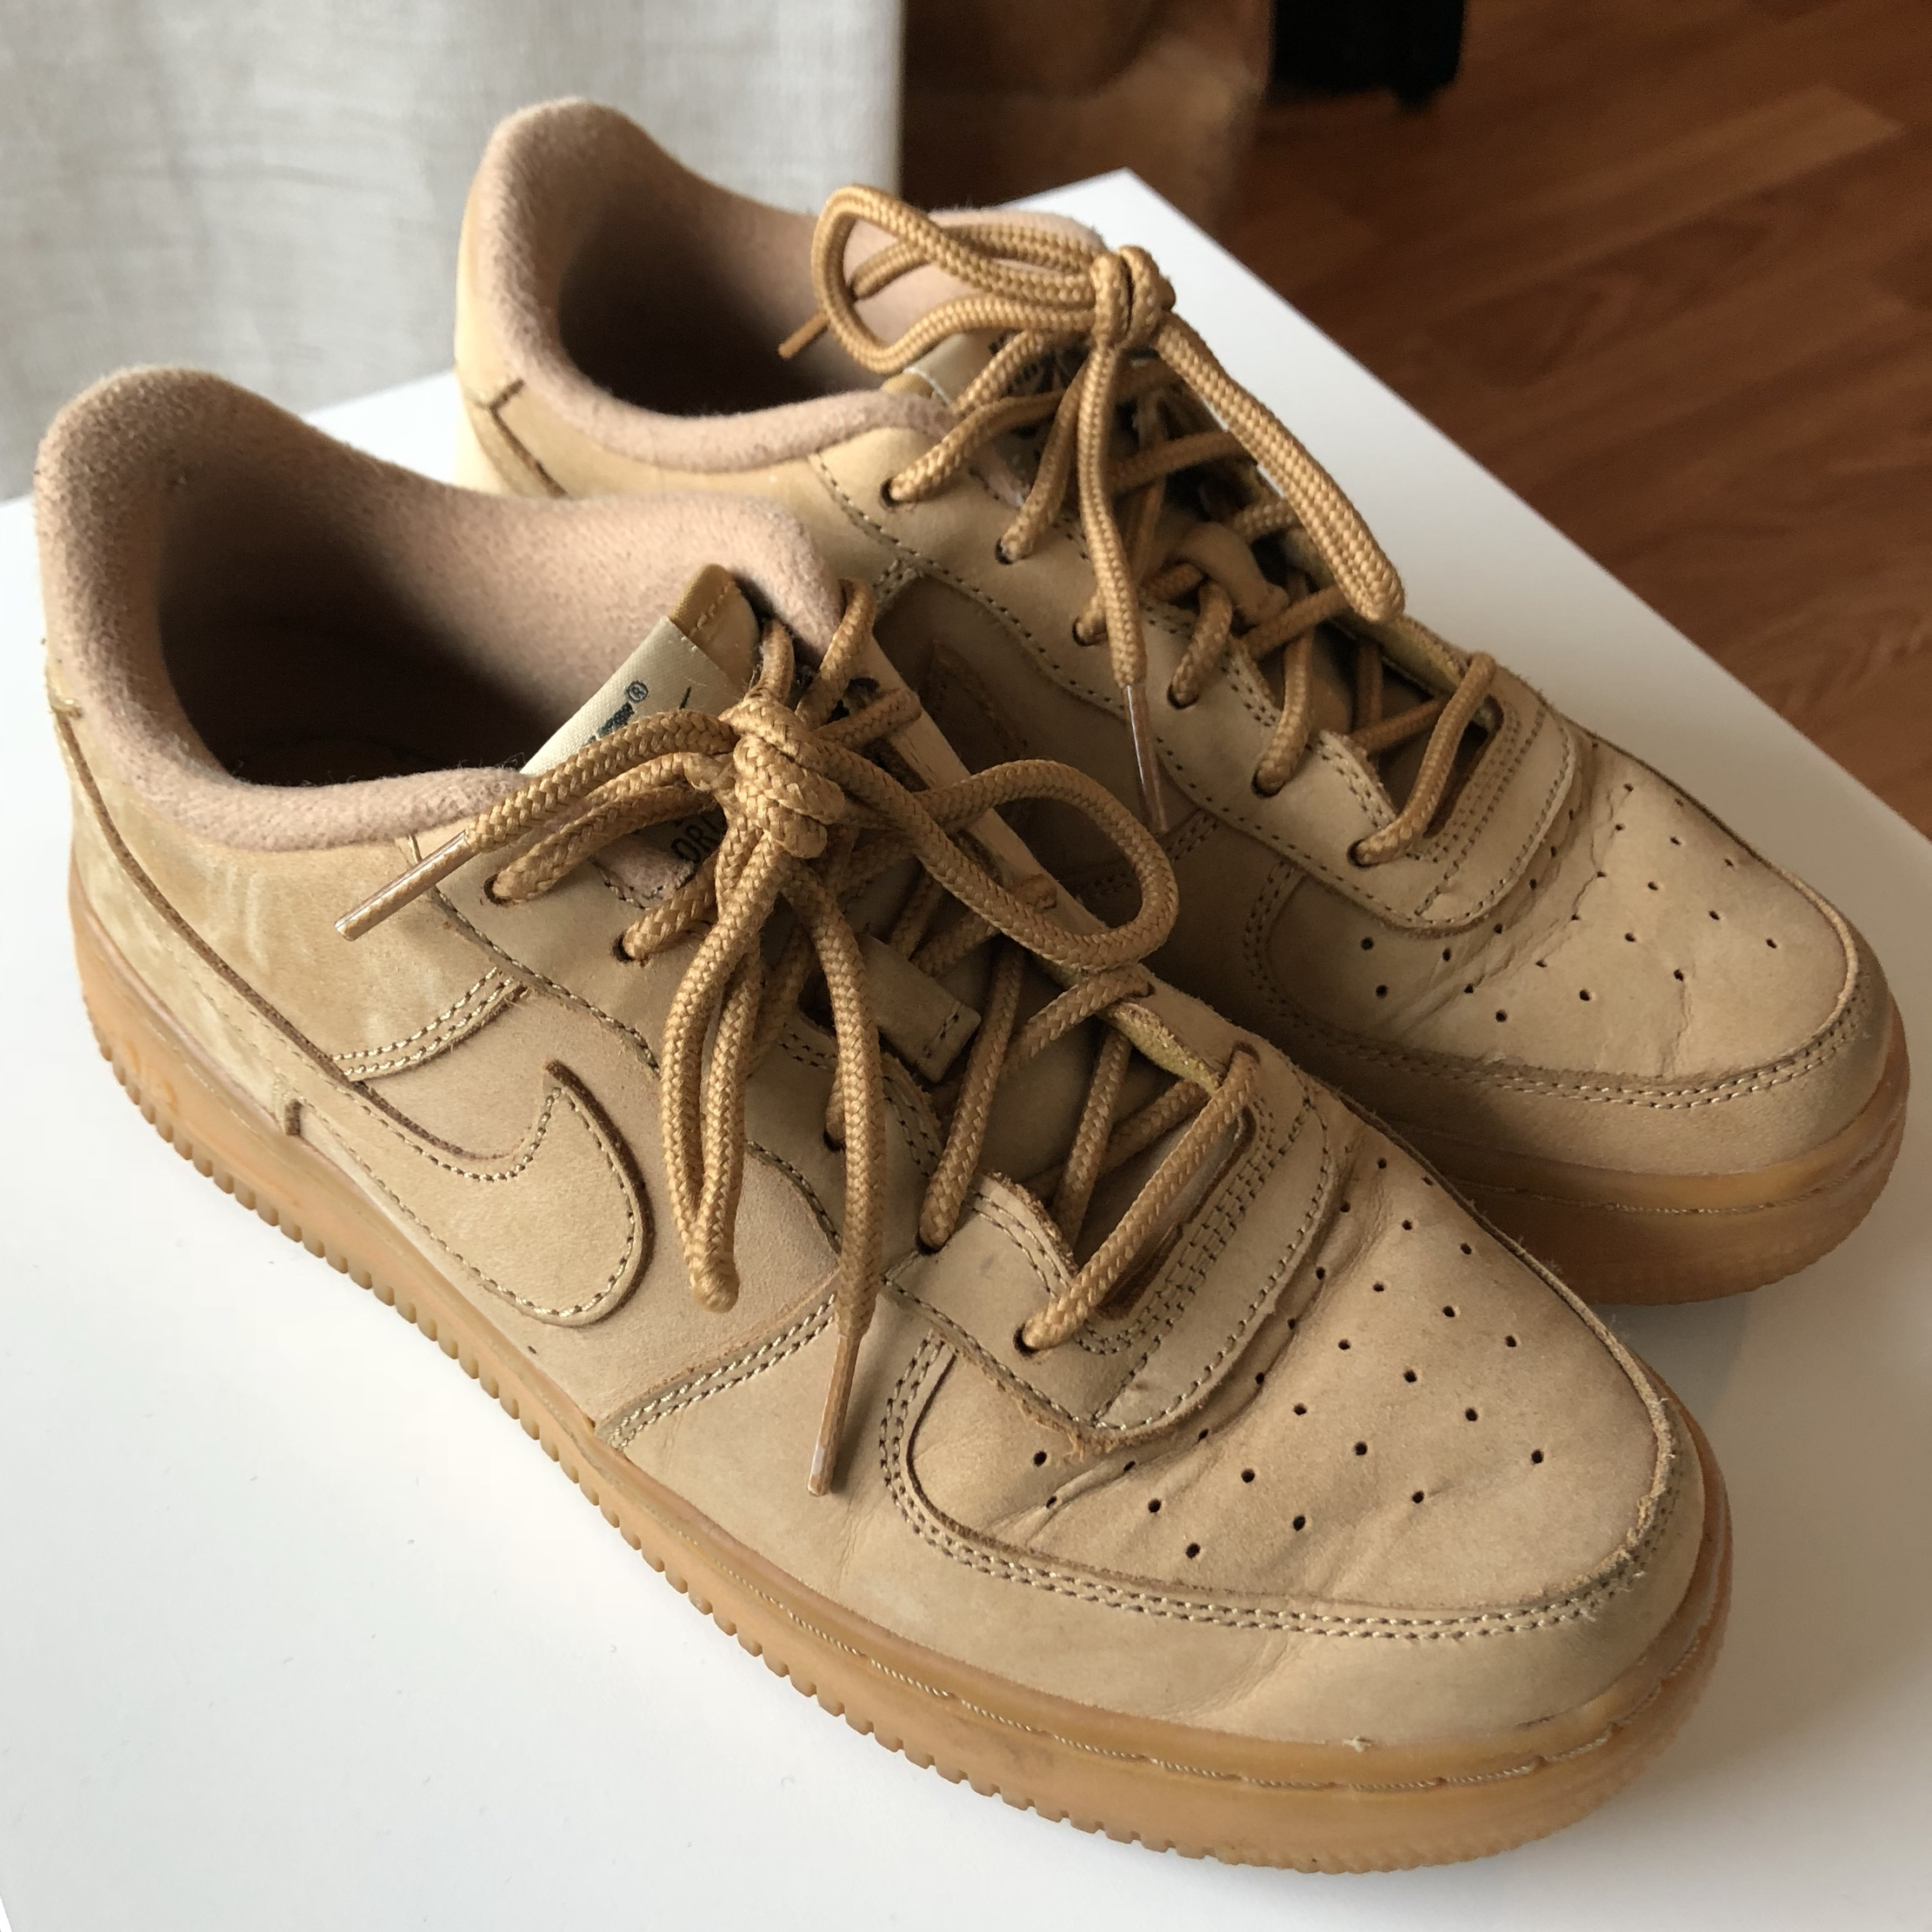 pas cher pour réduction c675b 1b3de Nike Air Force 1 camel / wheat / brown - condition... - Depop